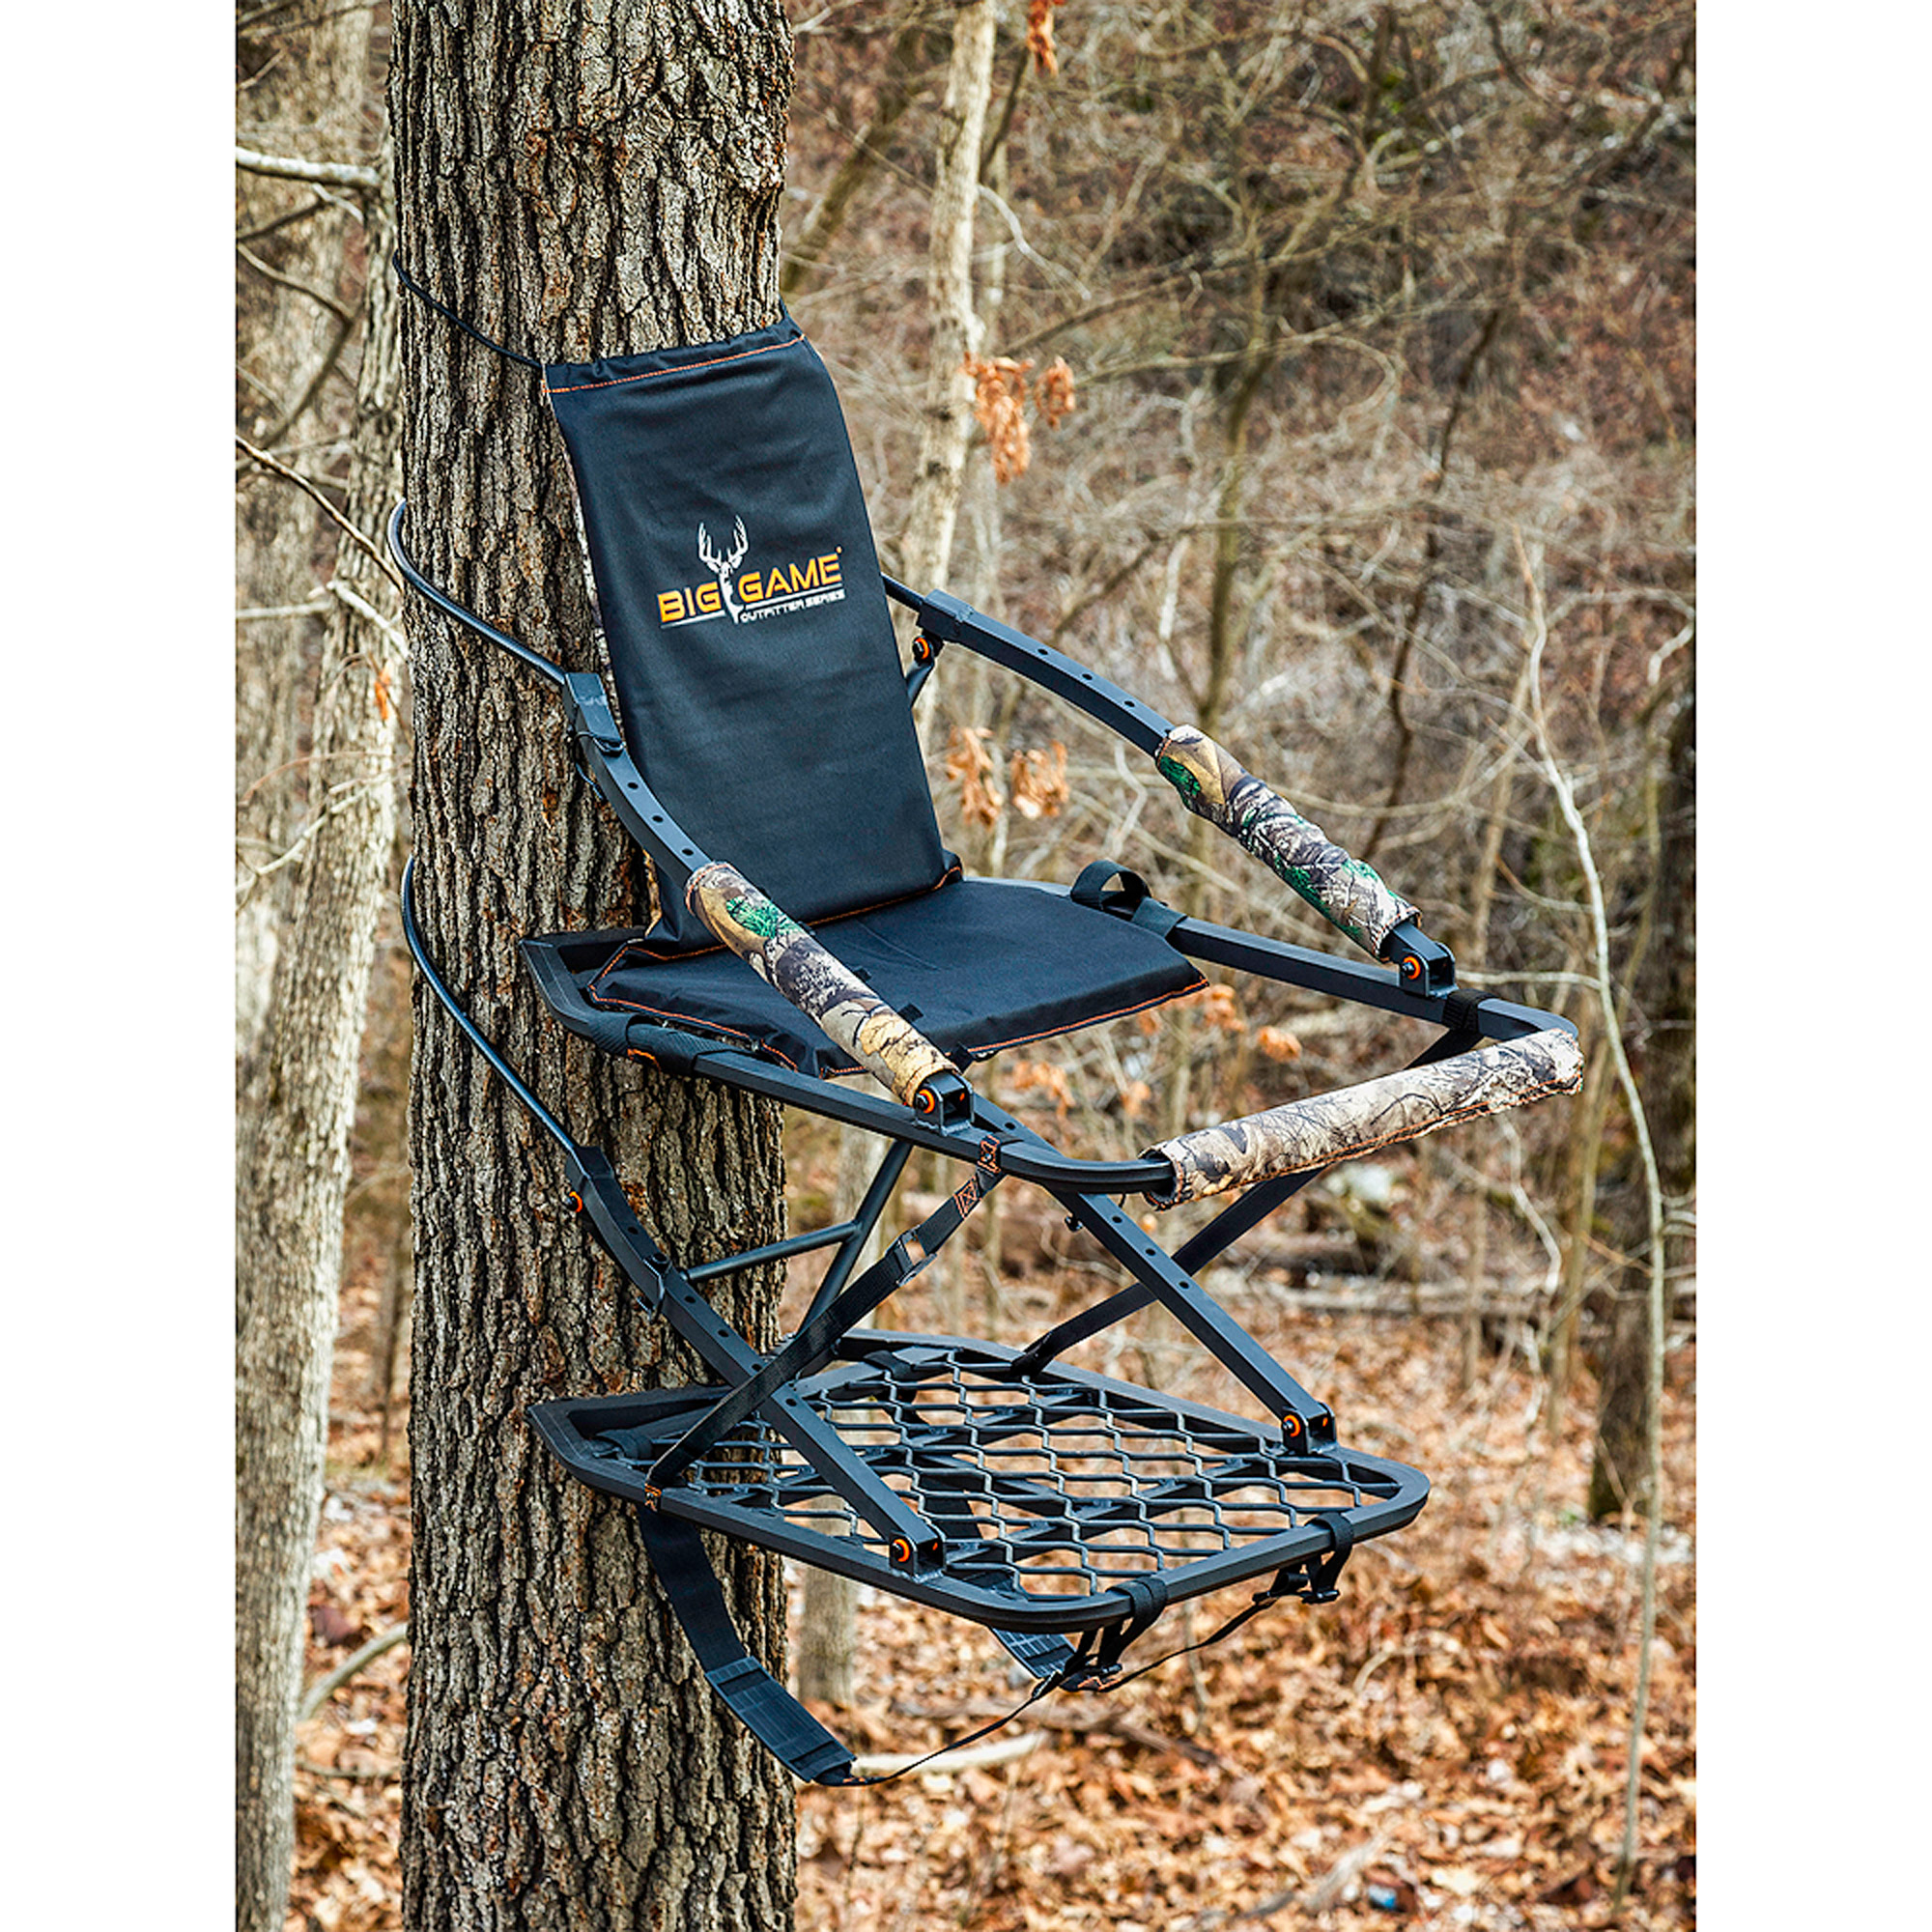 Big Game Deluxe Lightweight Aluminum Climber with Padded Cushion